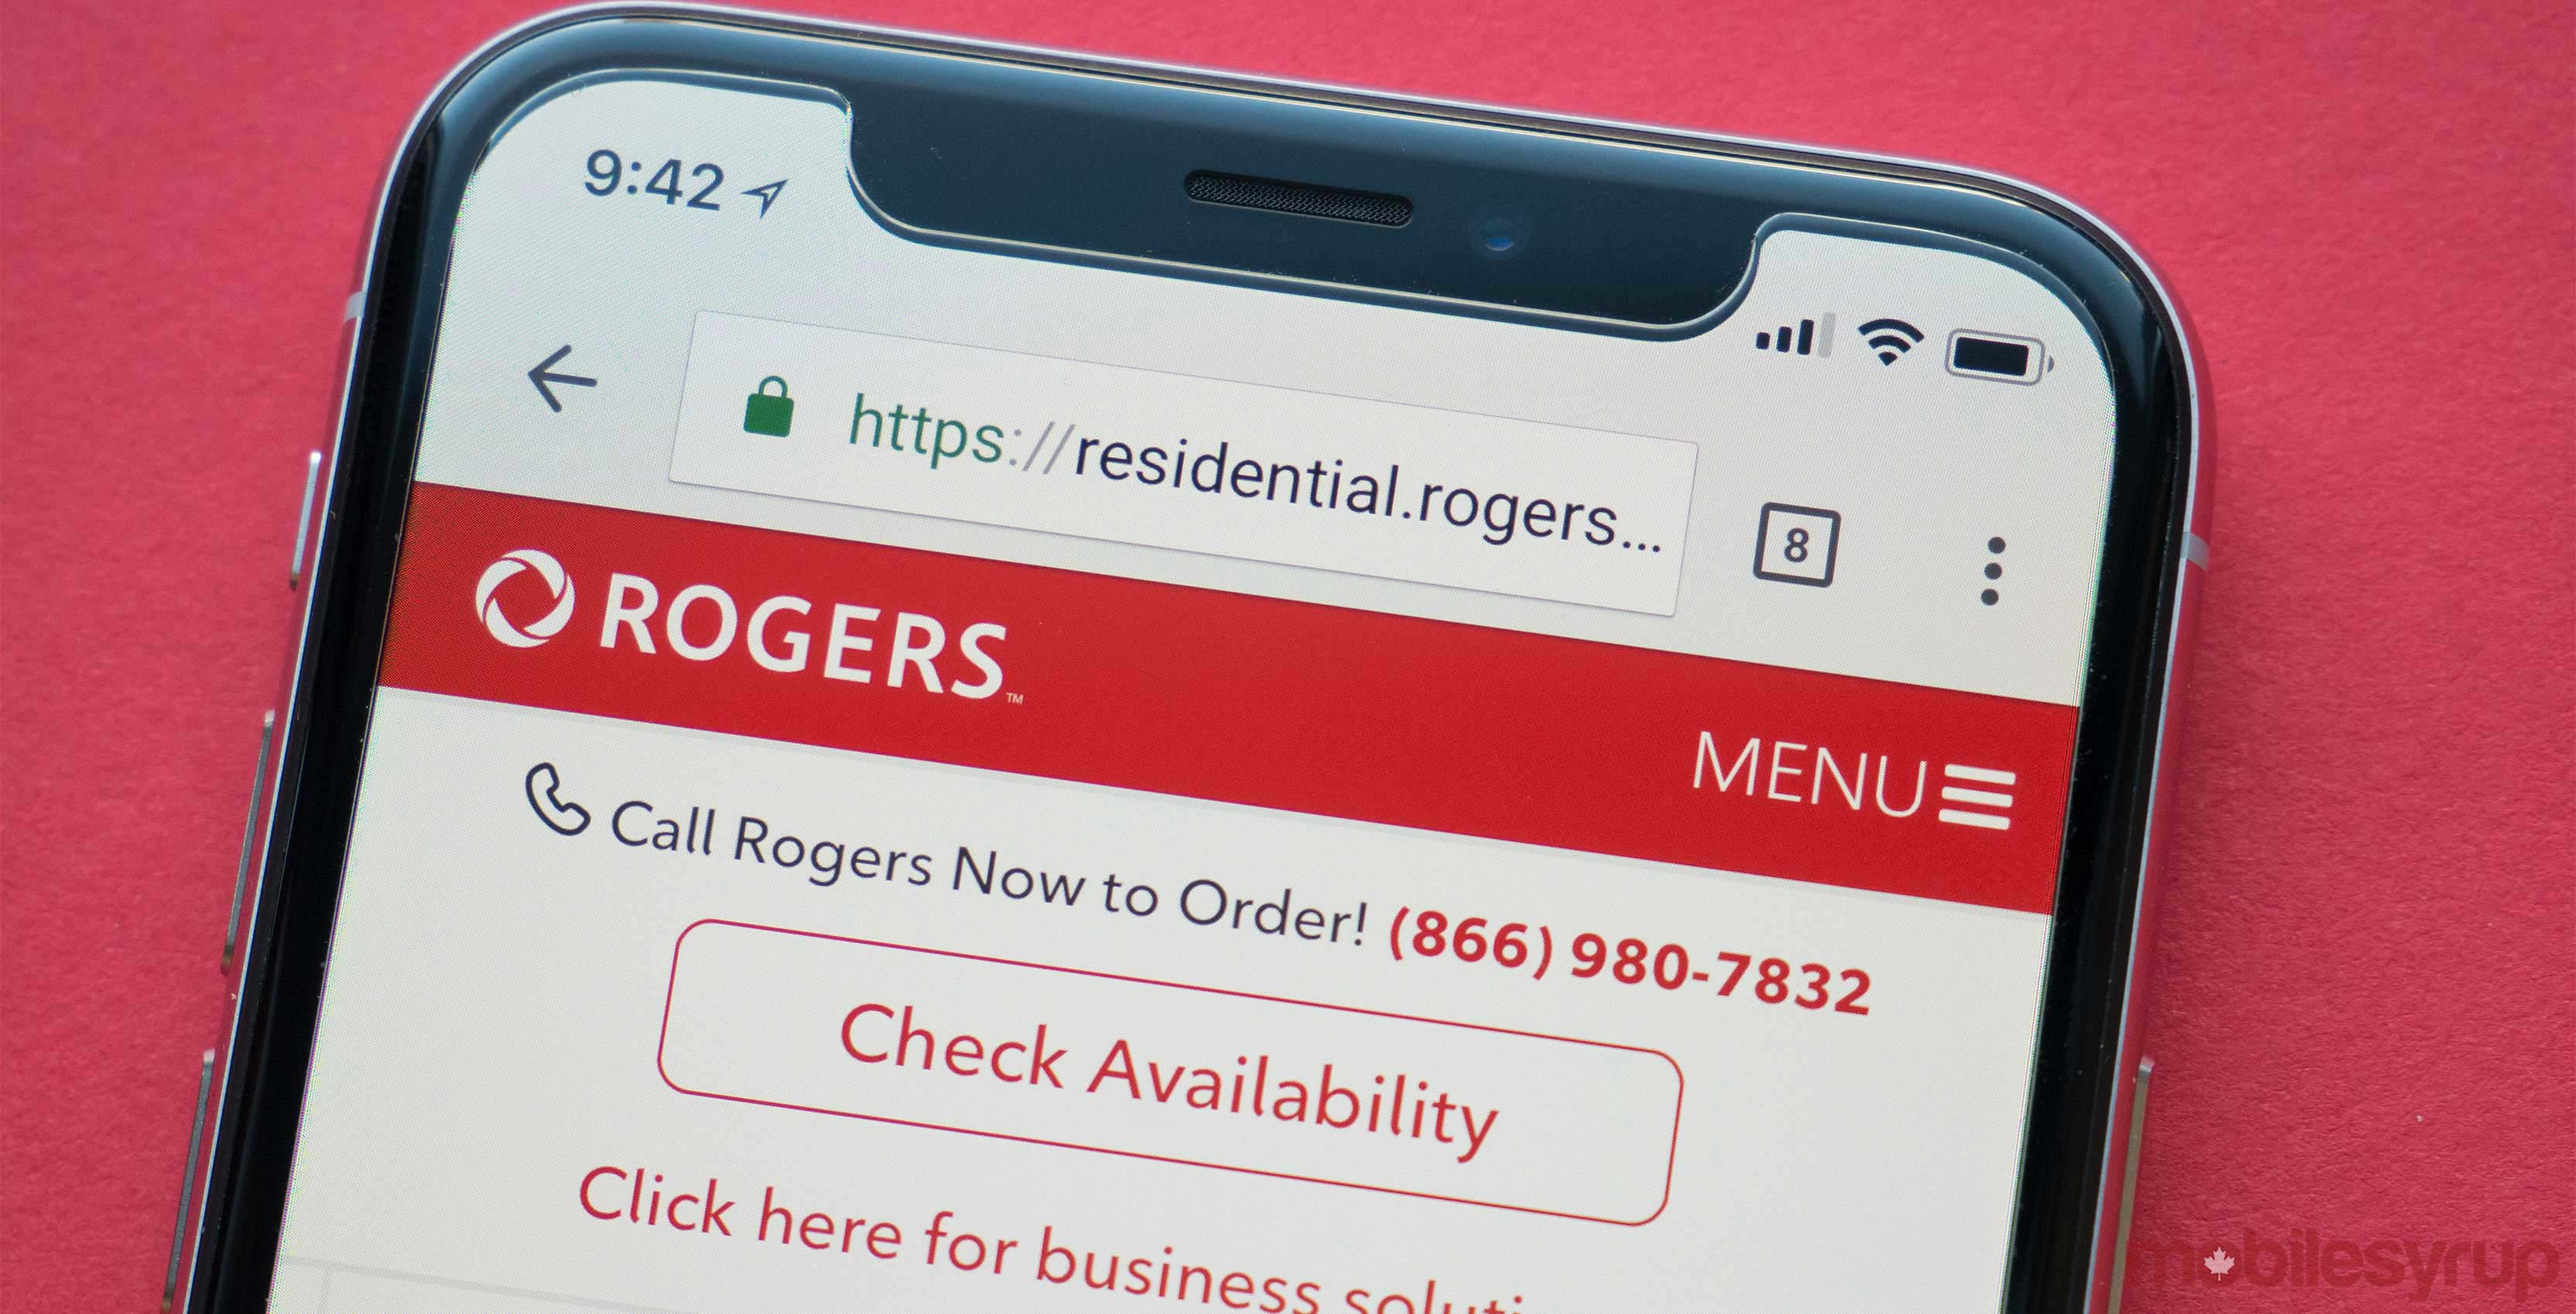 Rogers Adds 95000 Net Postpaid Subscribers in Q1 2018